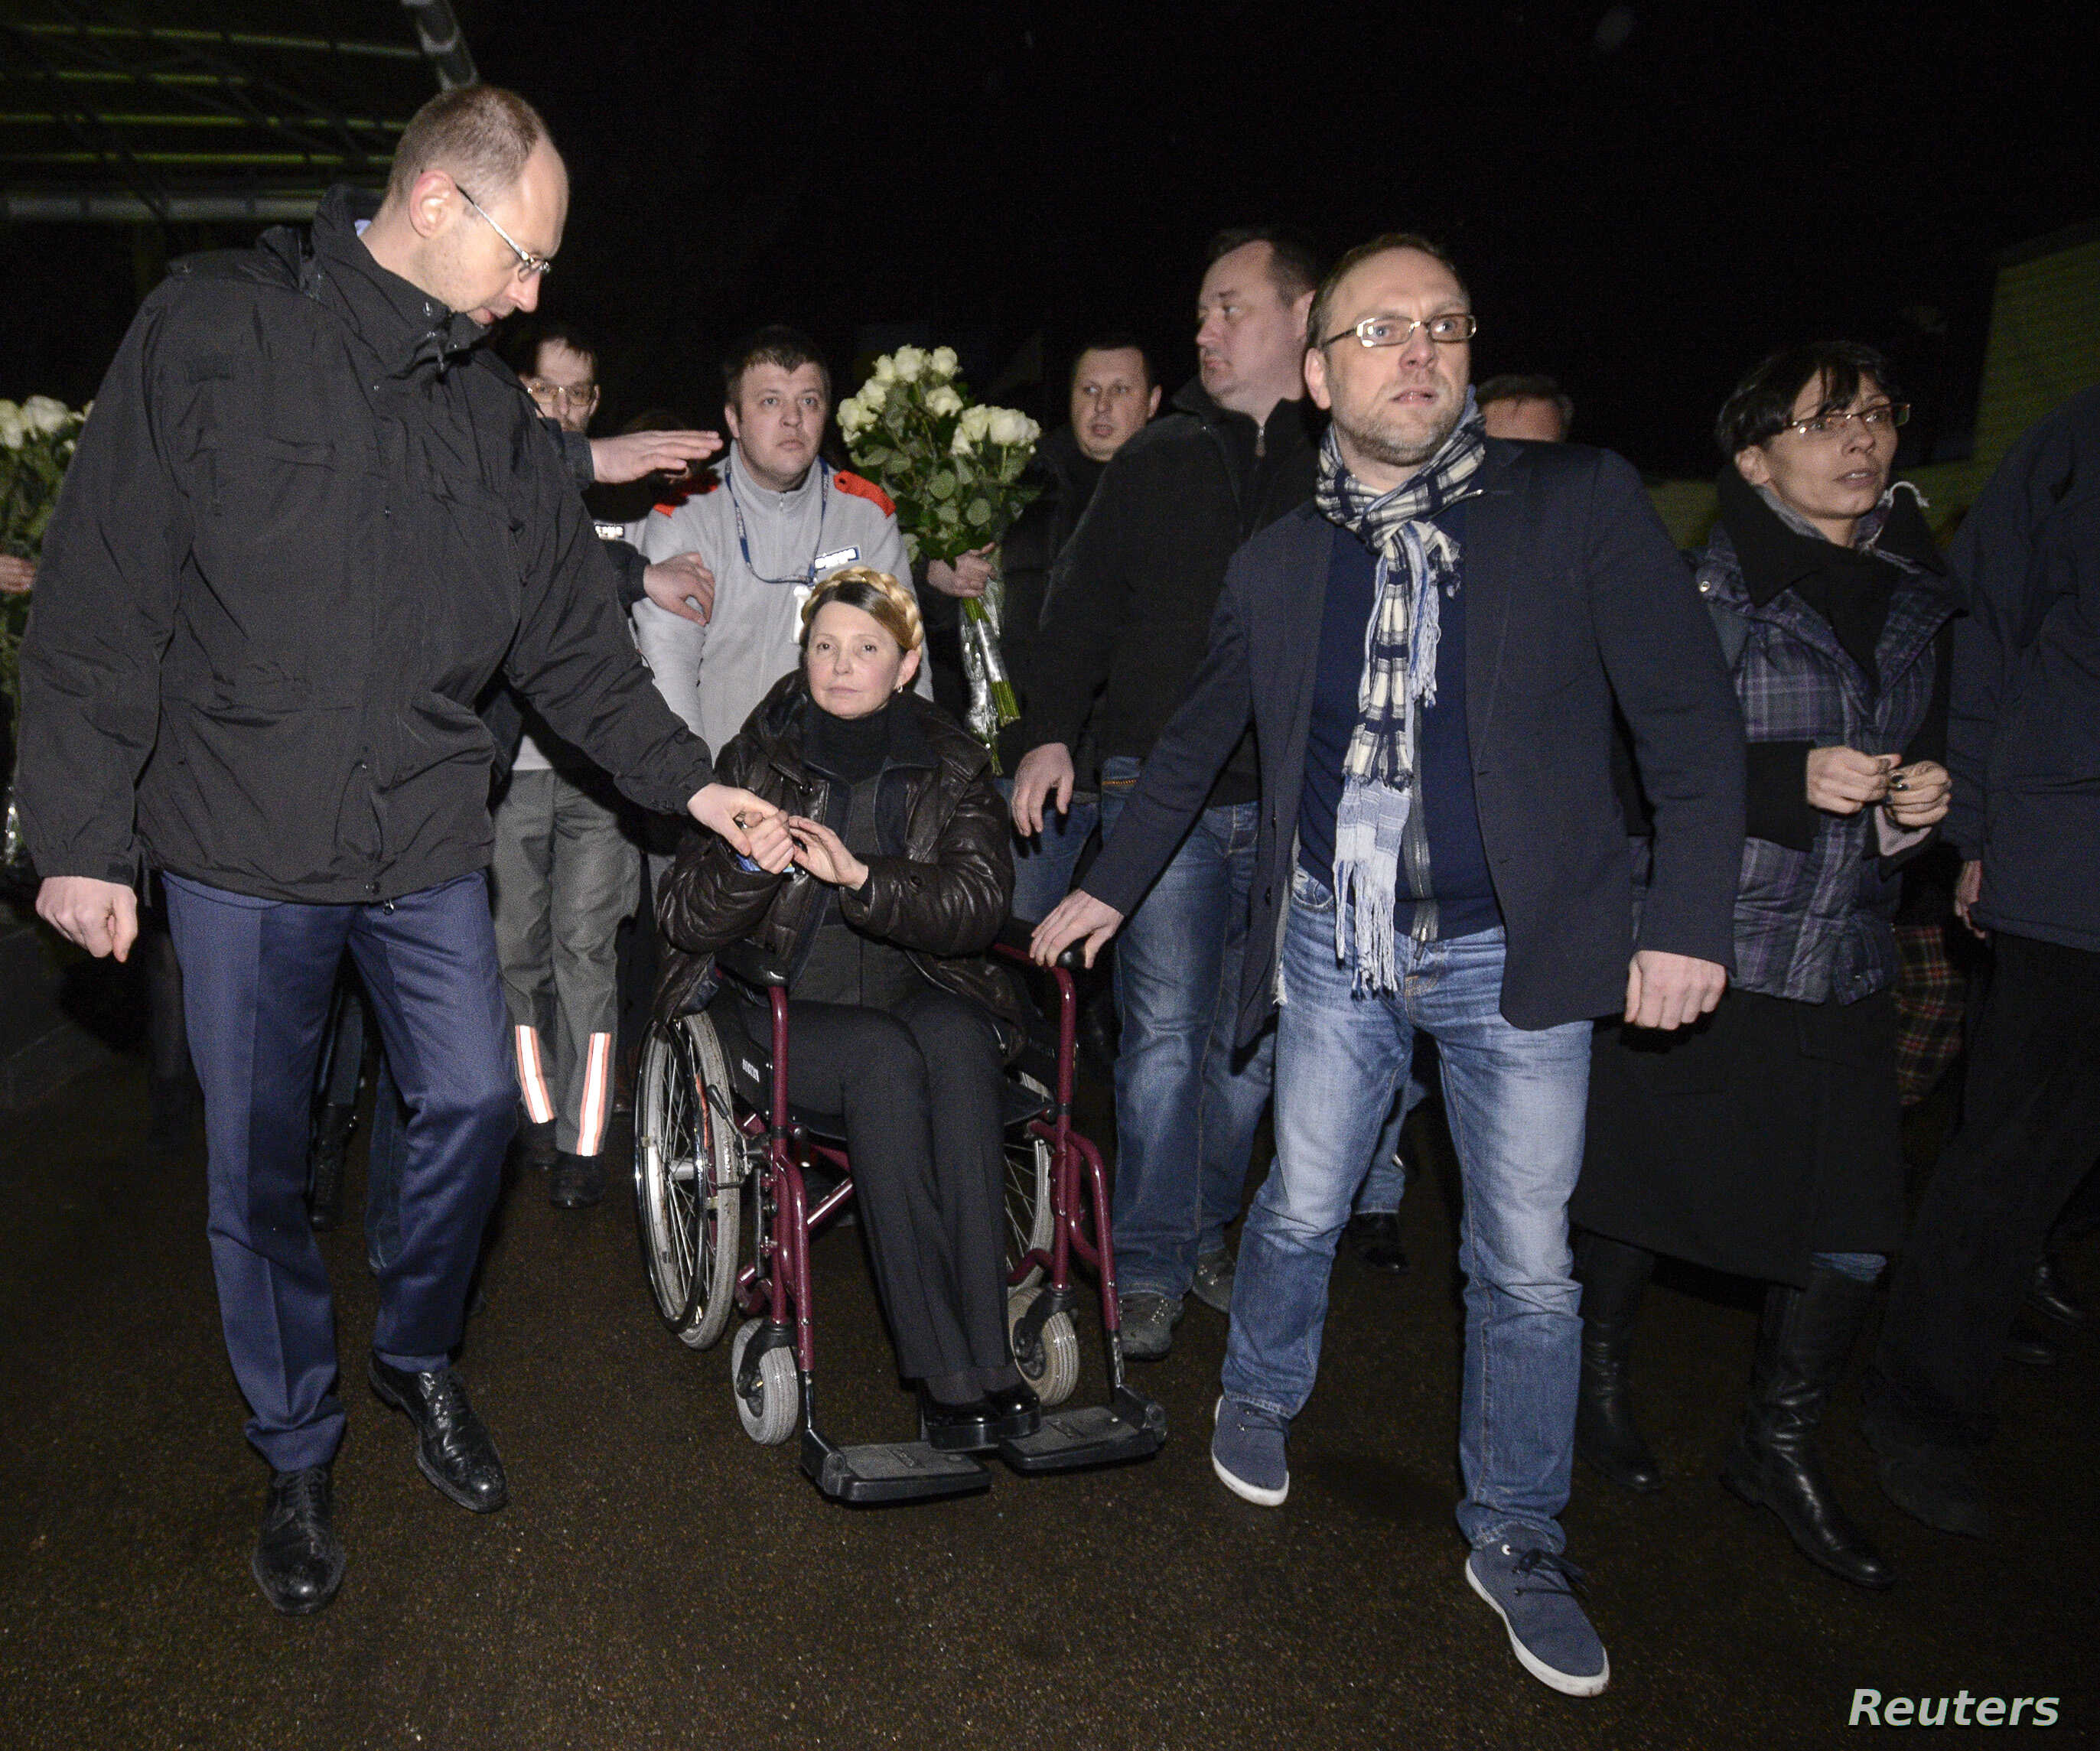 Ukrainian opposition leader Yulia Tymoshenko (C) is transported on a wheelchair upon her arrival at the airport in Kyiv, Feb. 22, 2014.